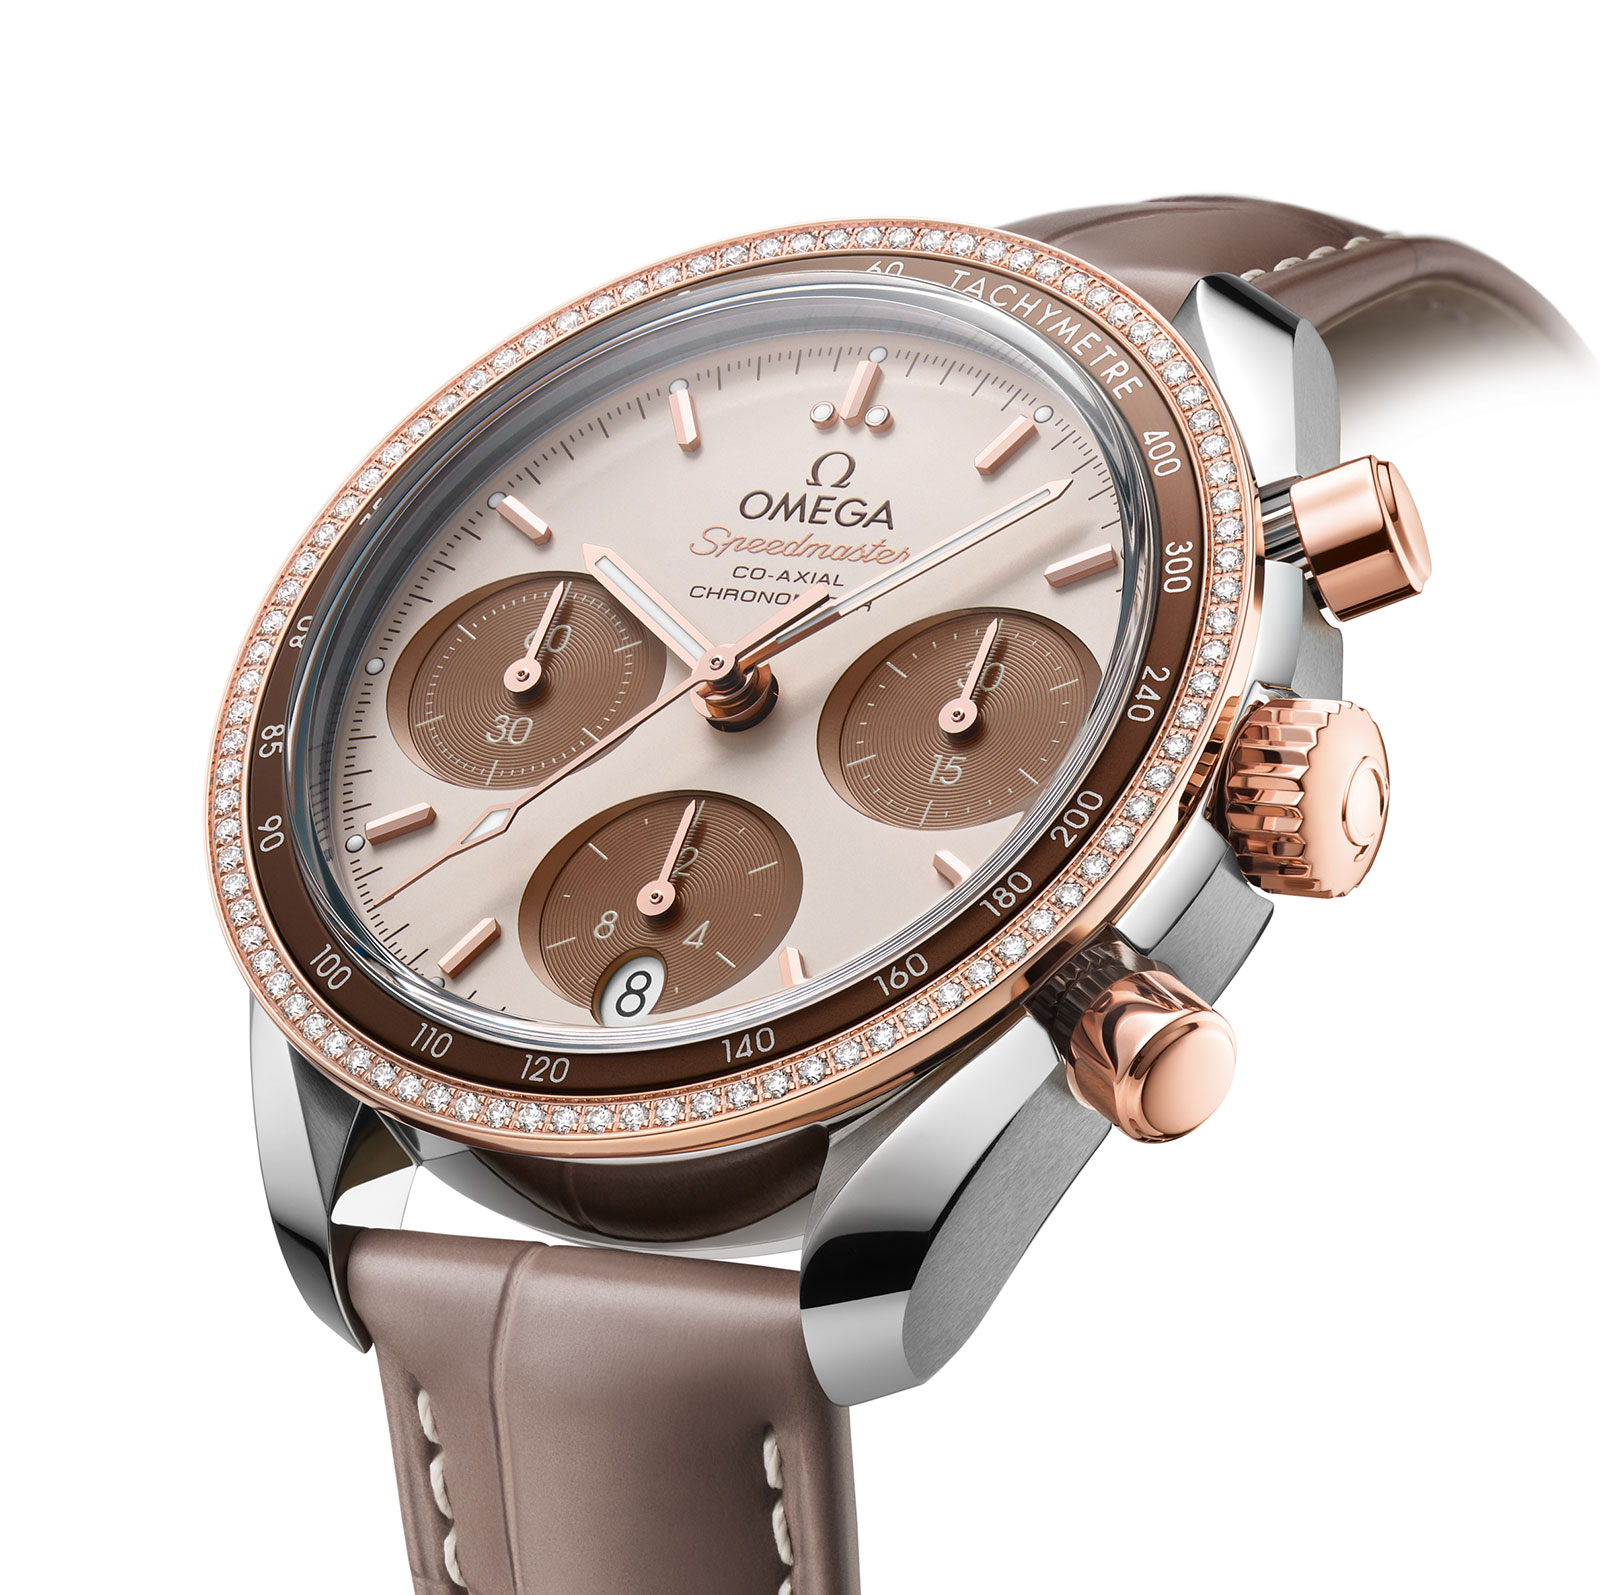 Omega Watches For Women 2017